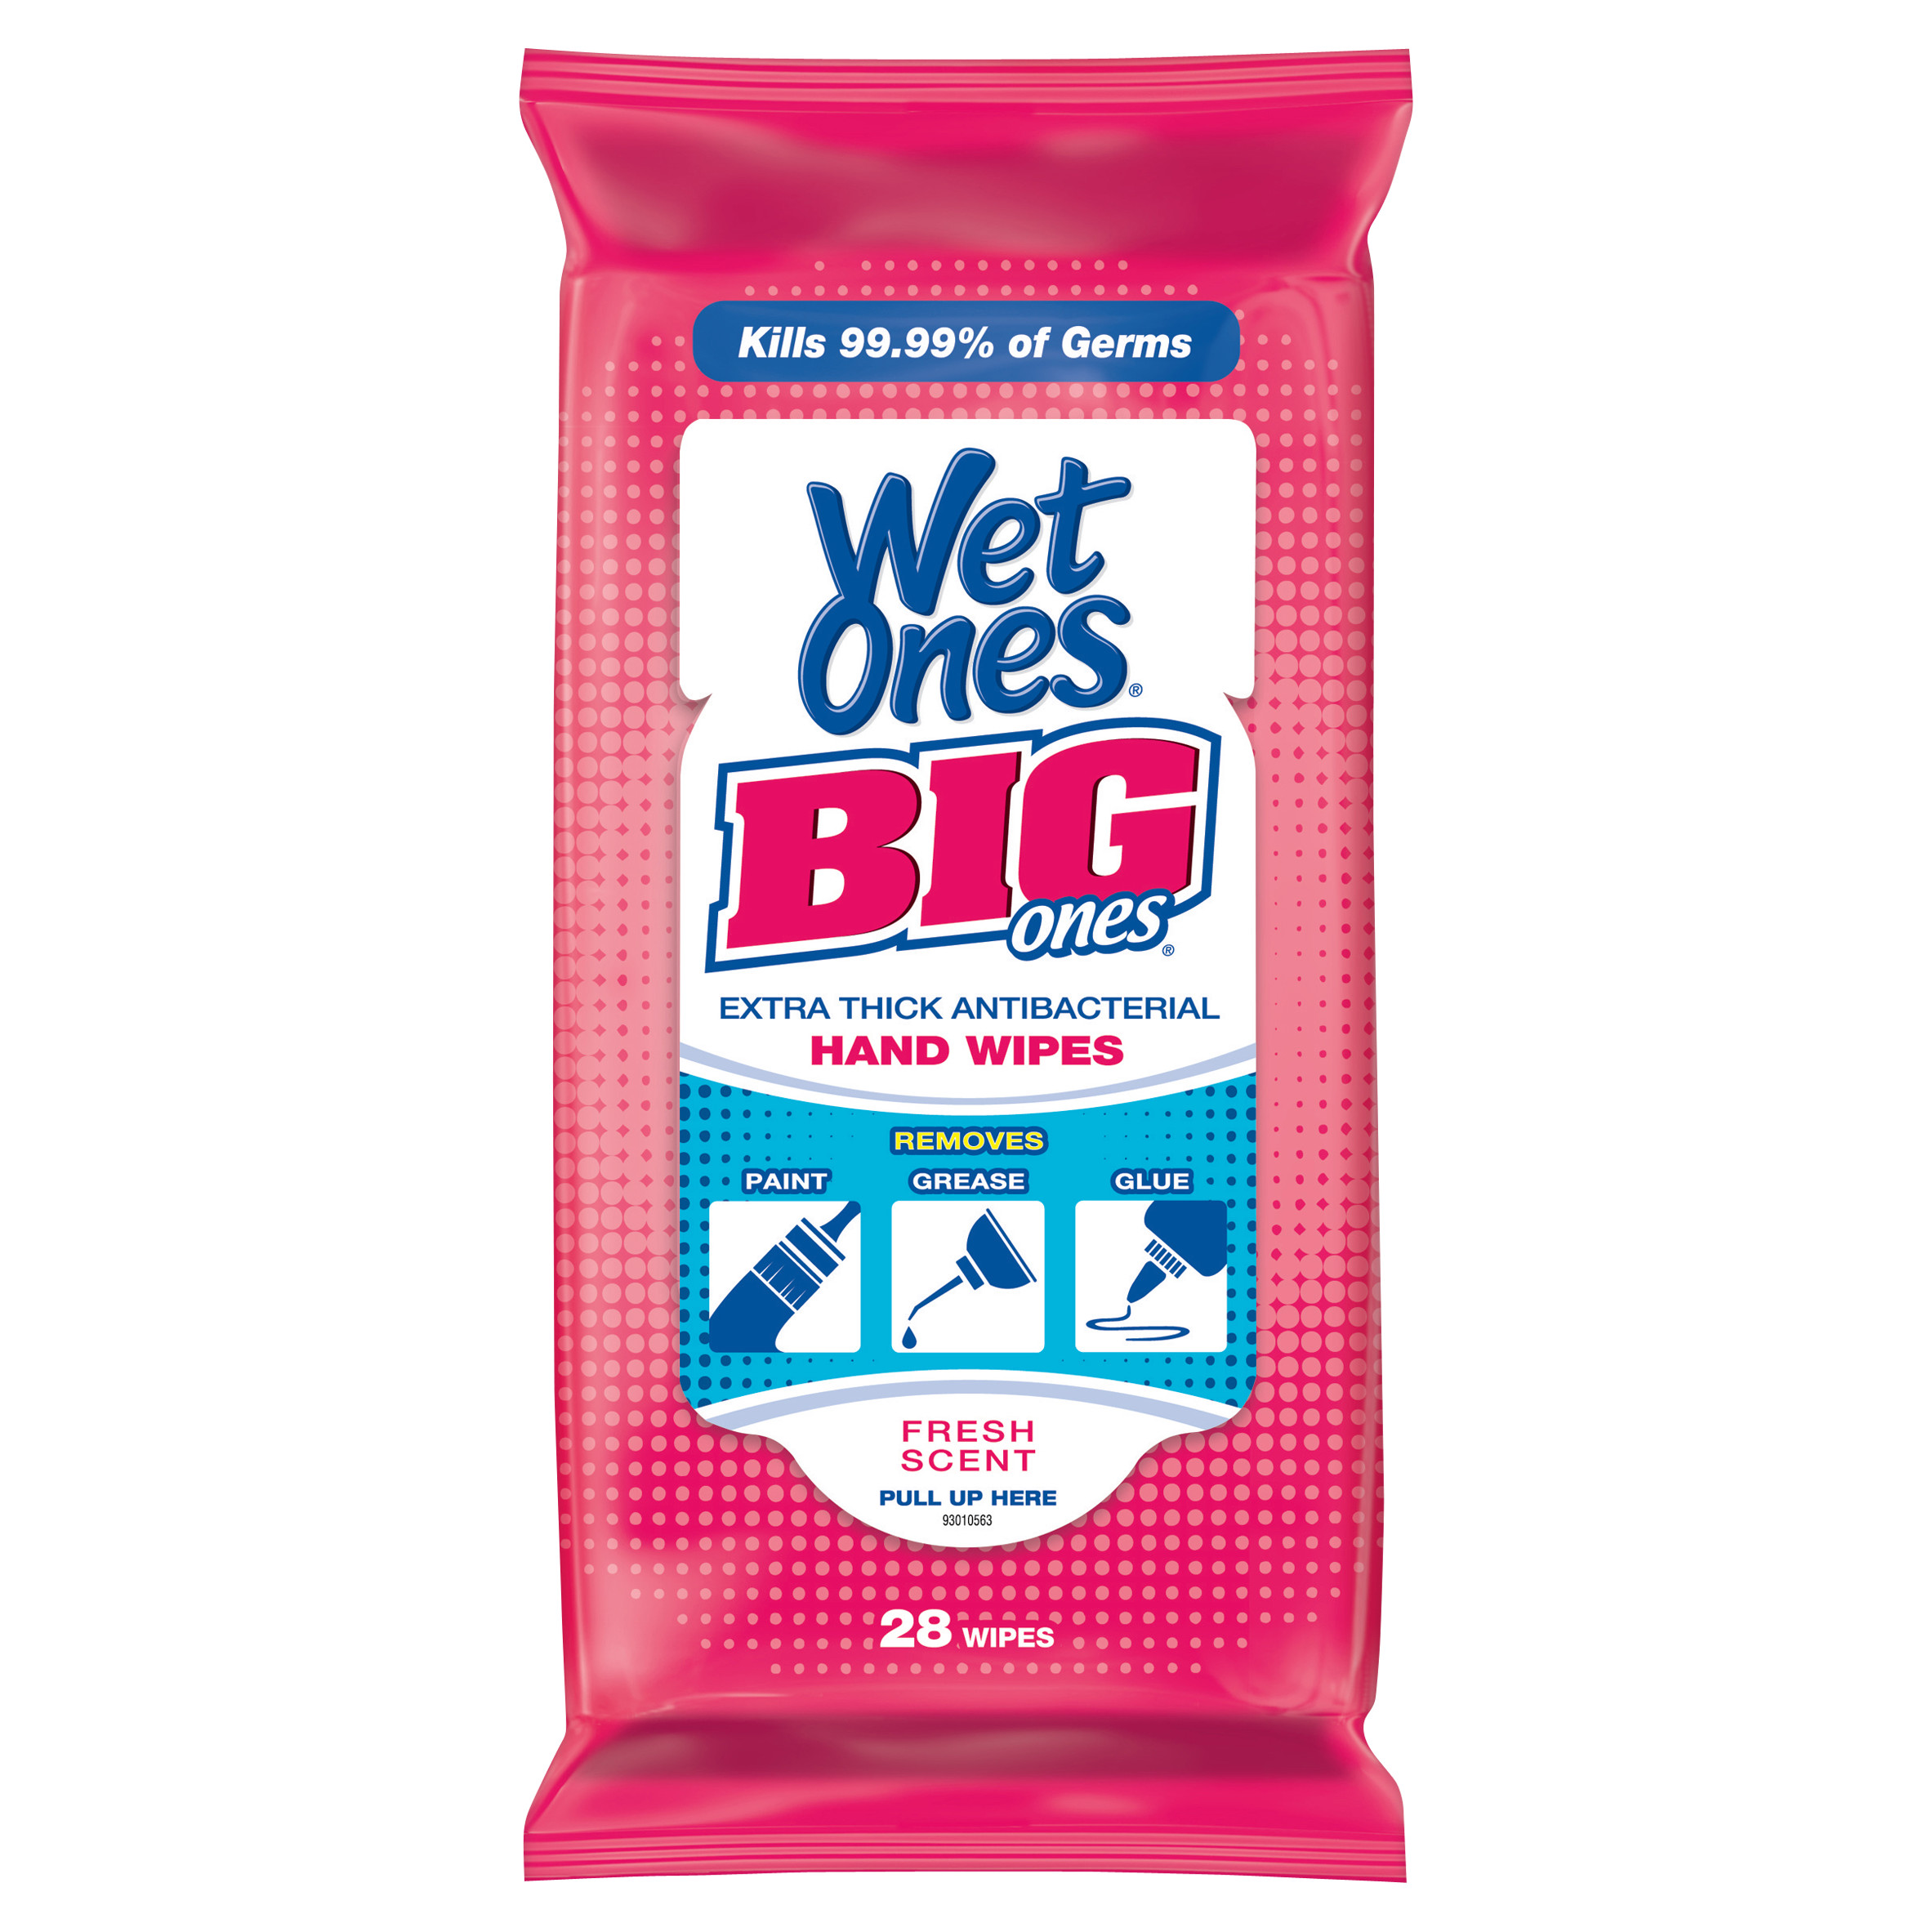 Wet Ones Big Ones Antibacterial Hand Wipes Travel Pack - 24 Count